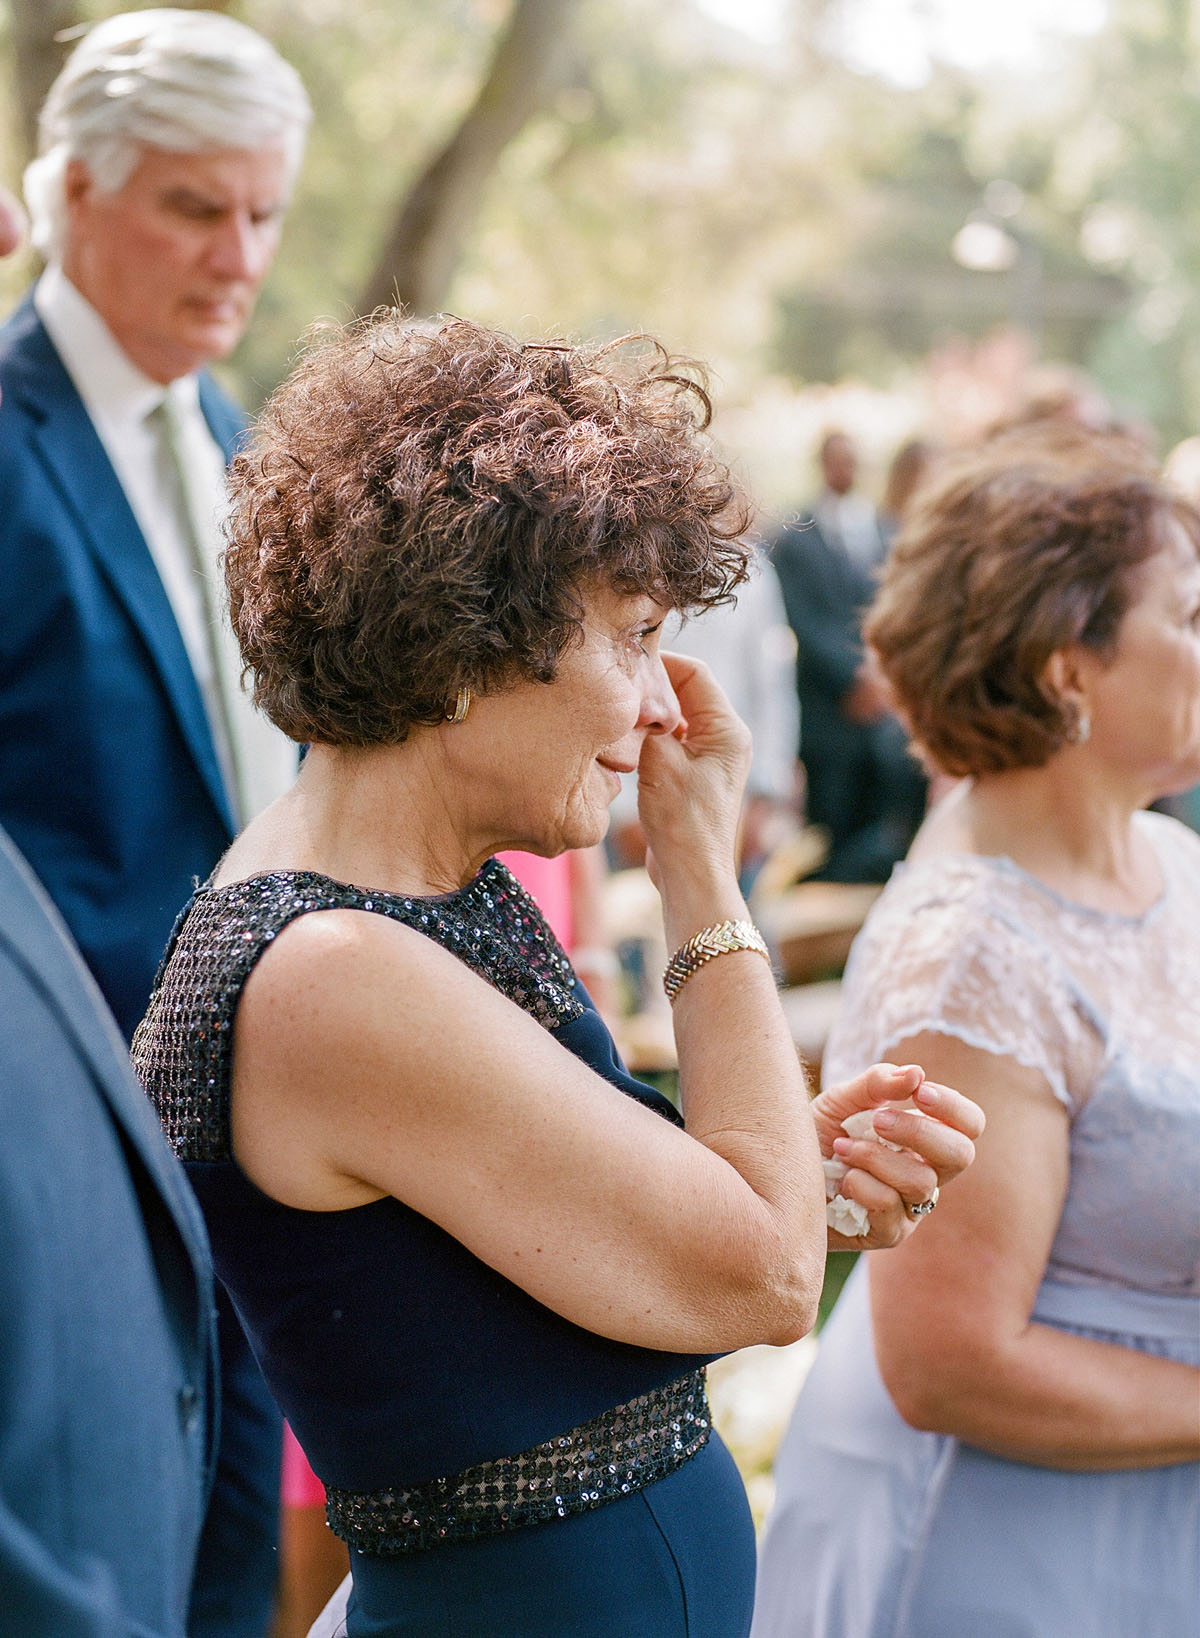 20-guest-crying-ceremony.jpg